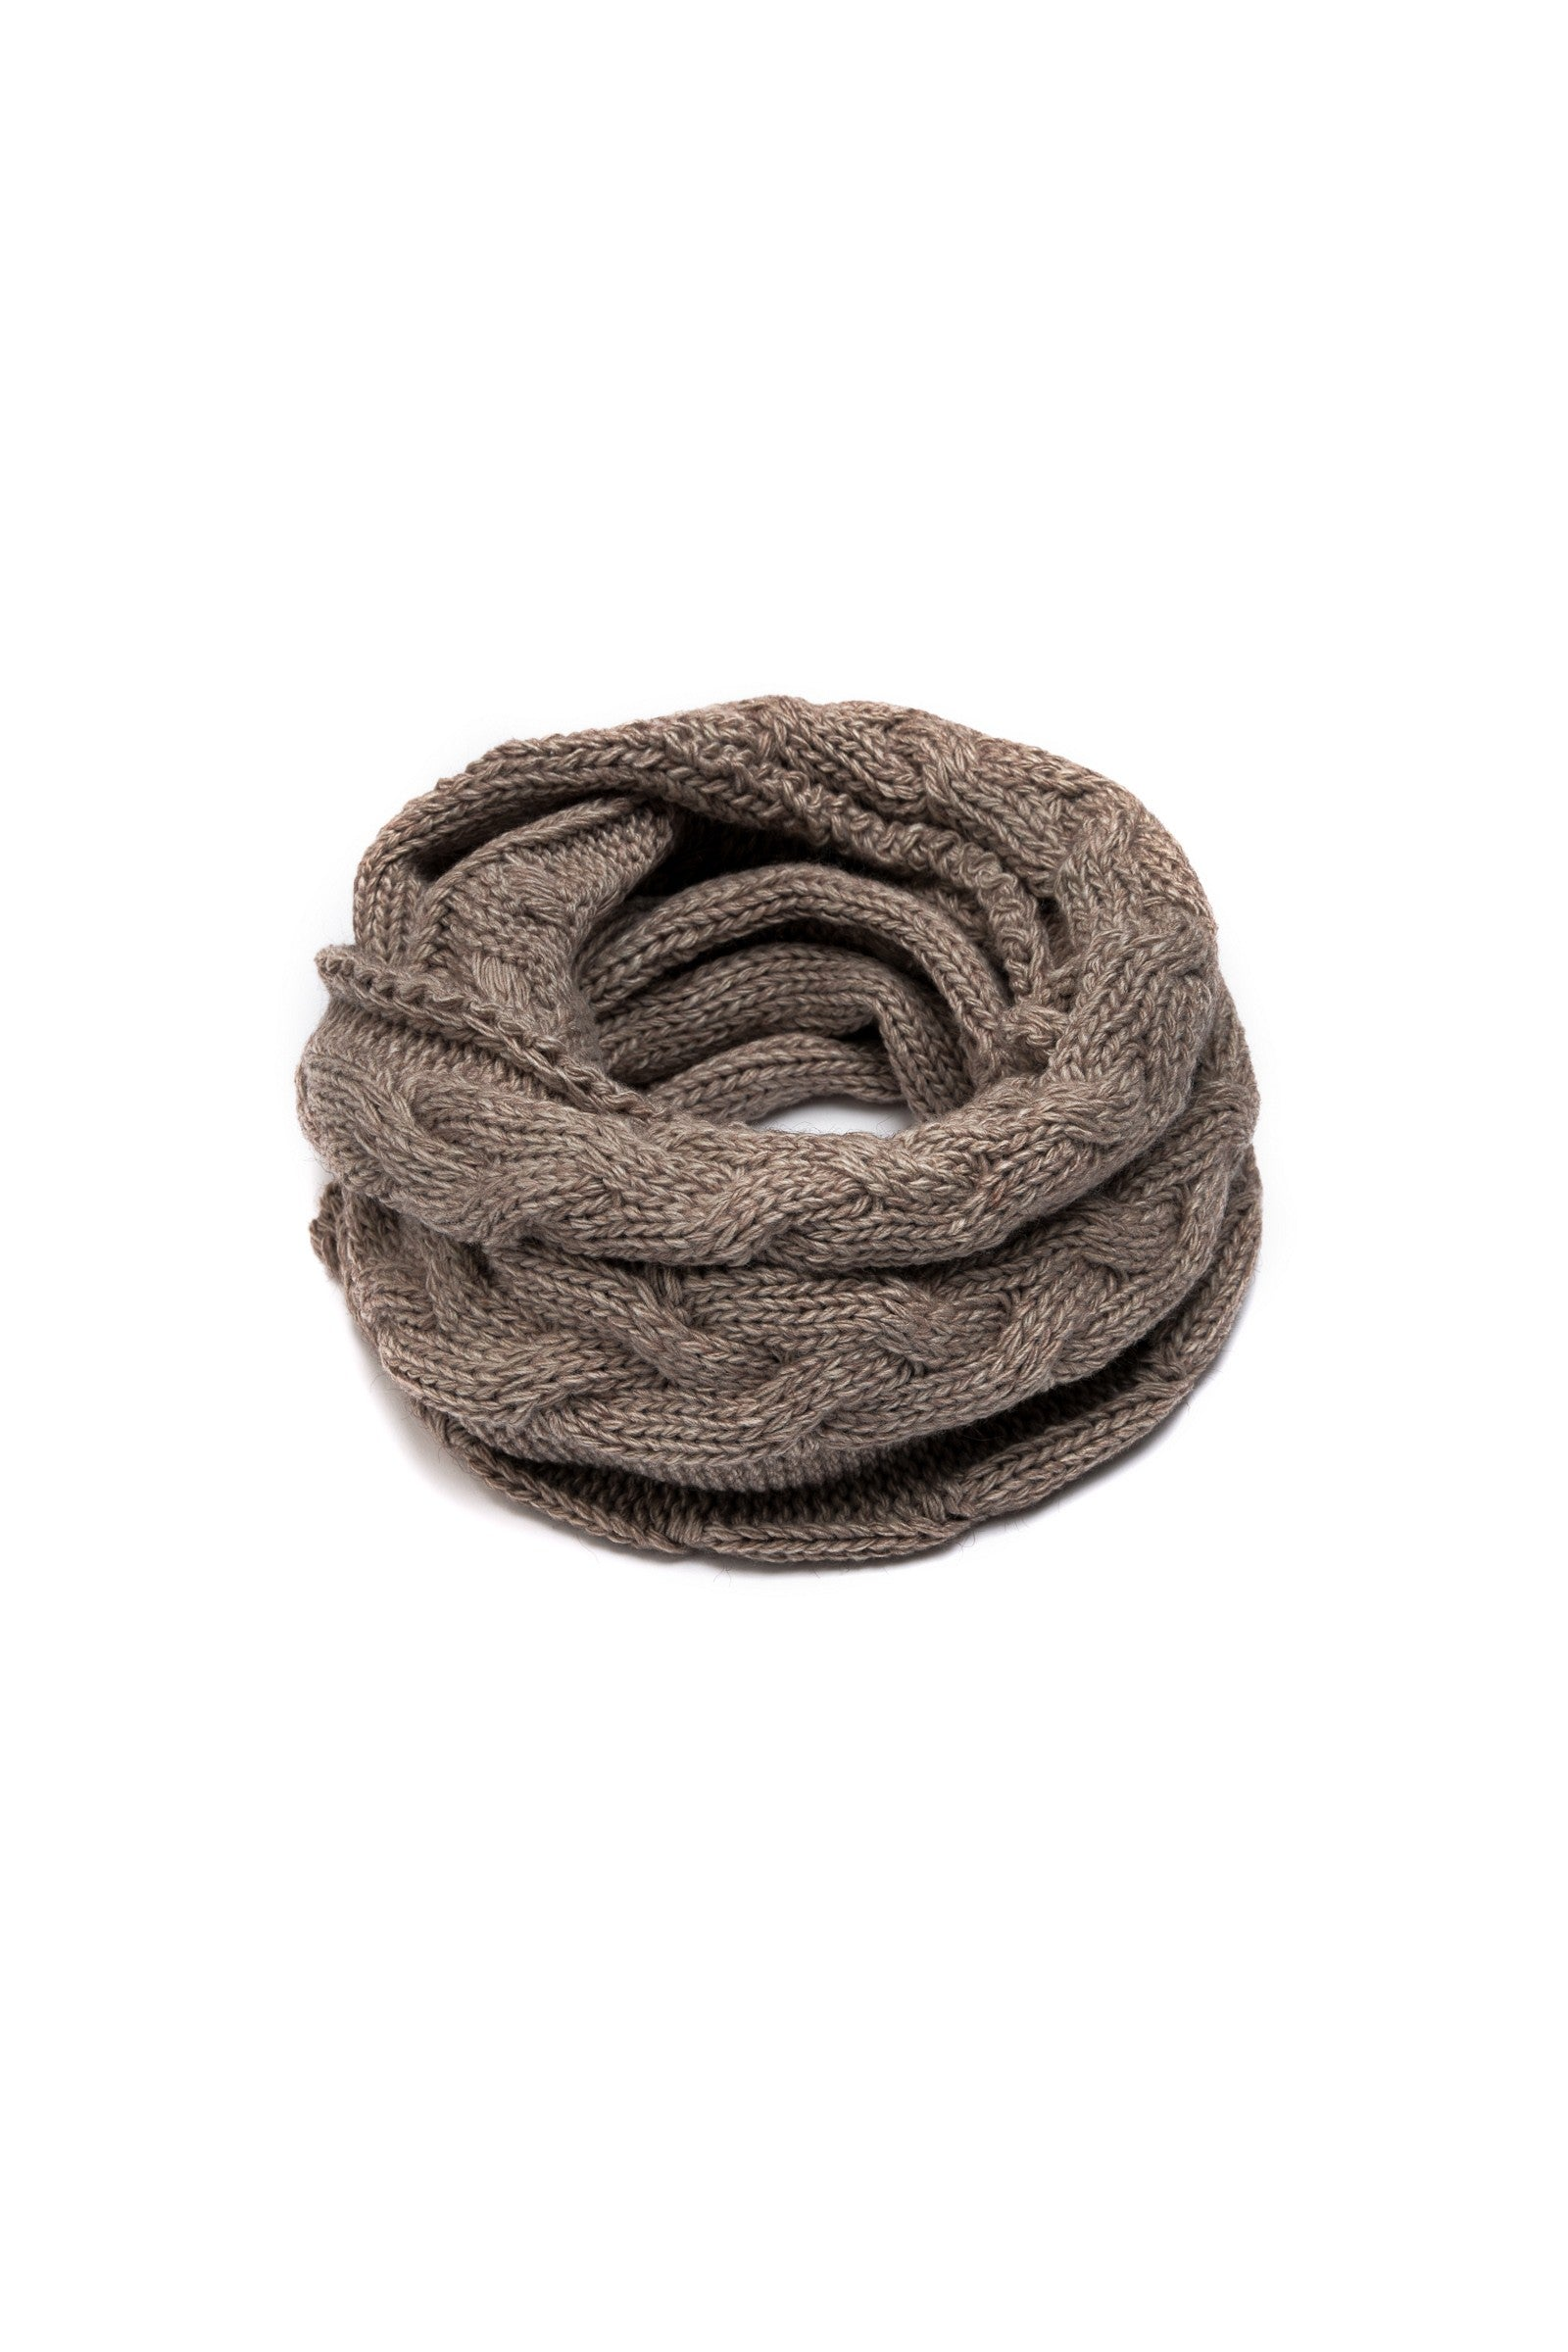 parajumpers scarf